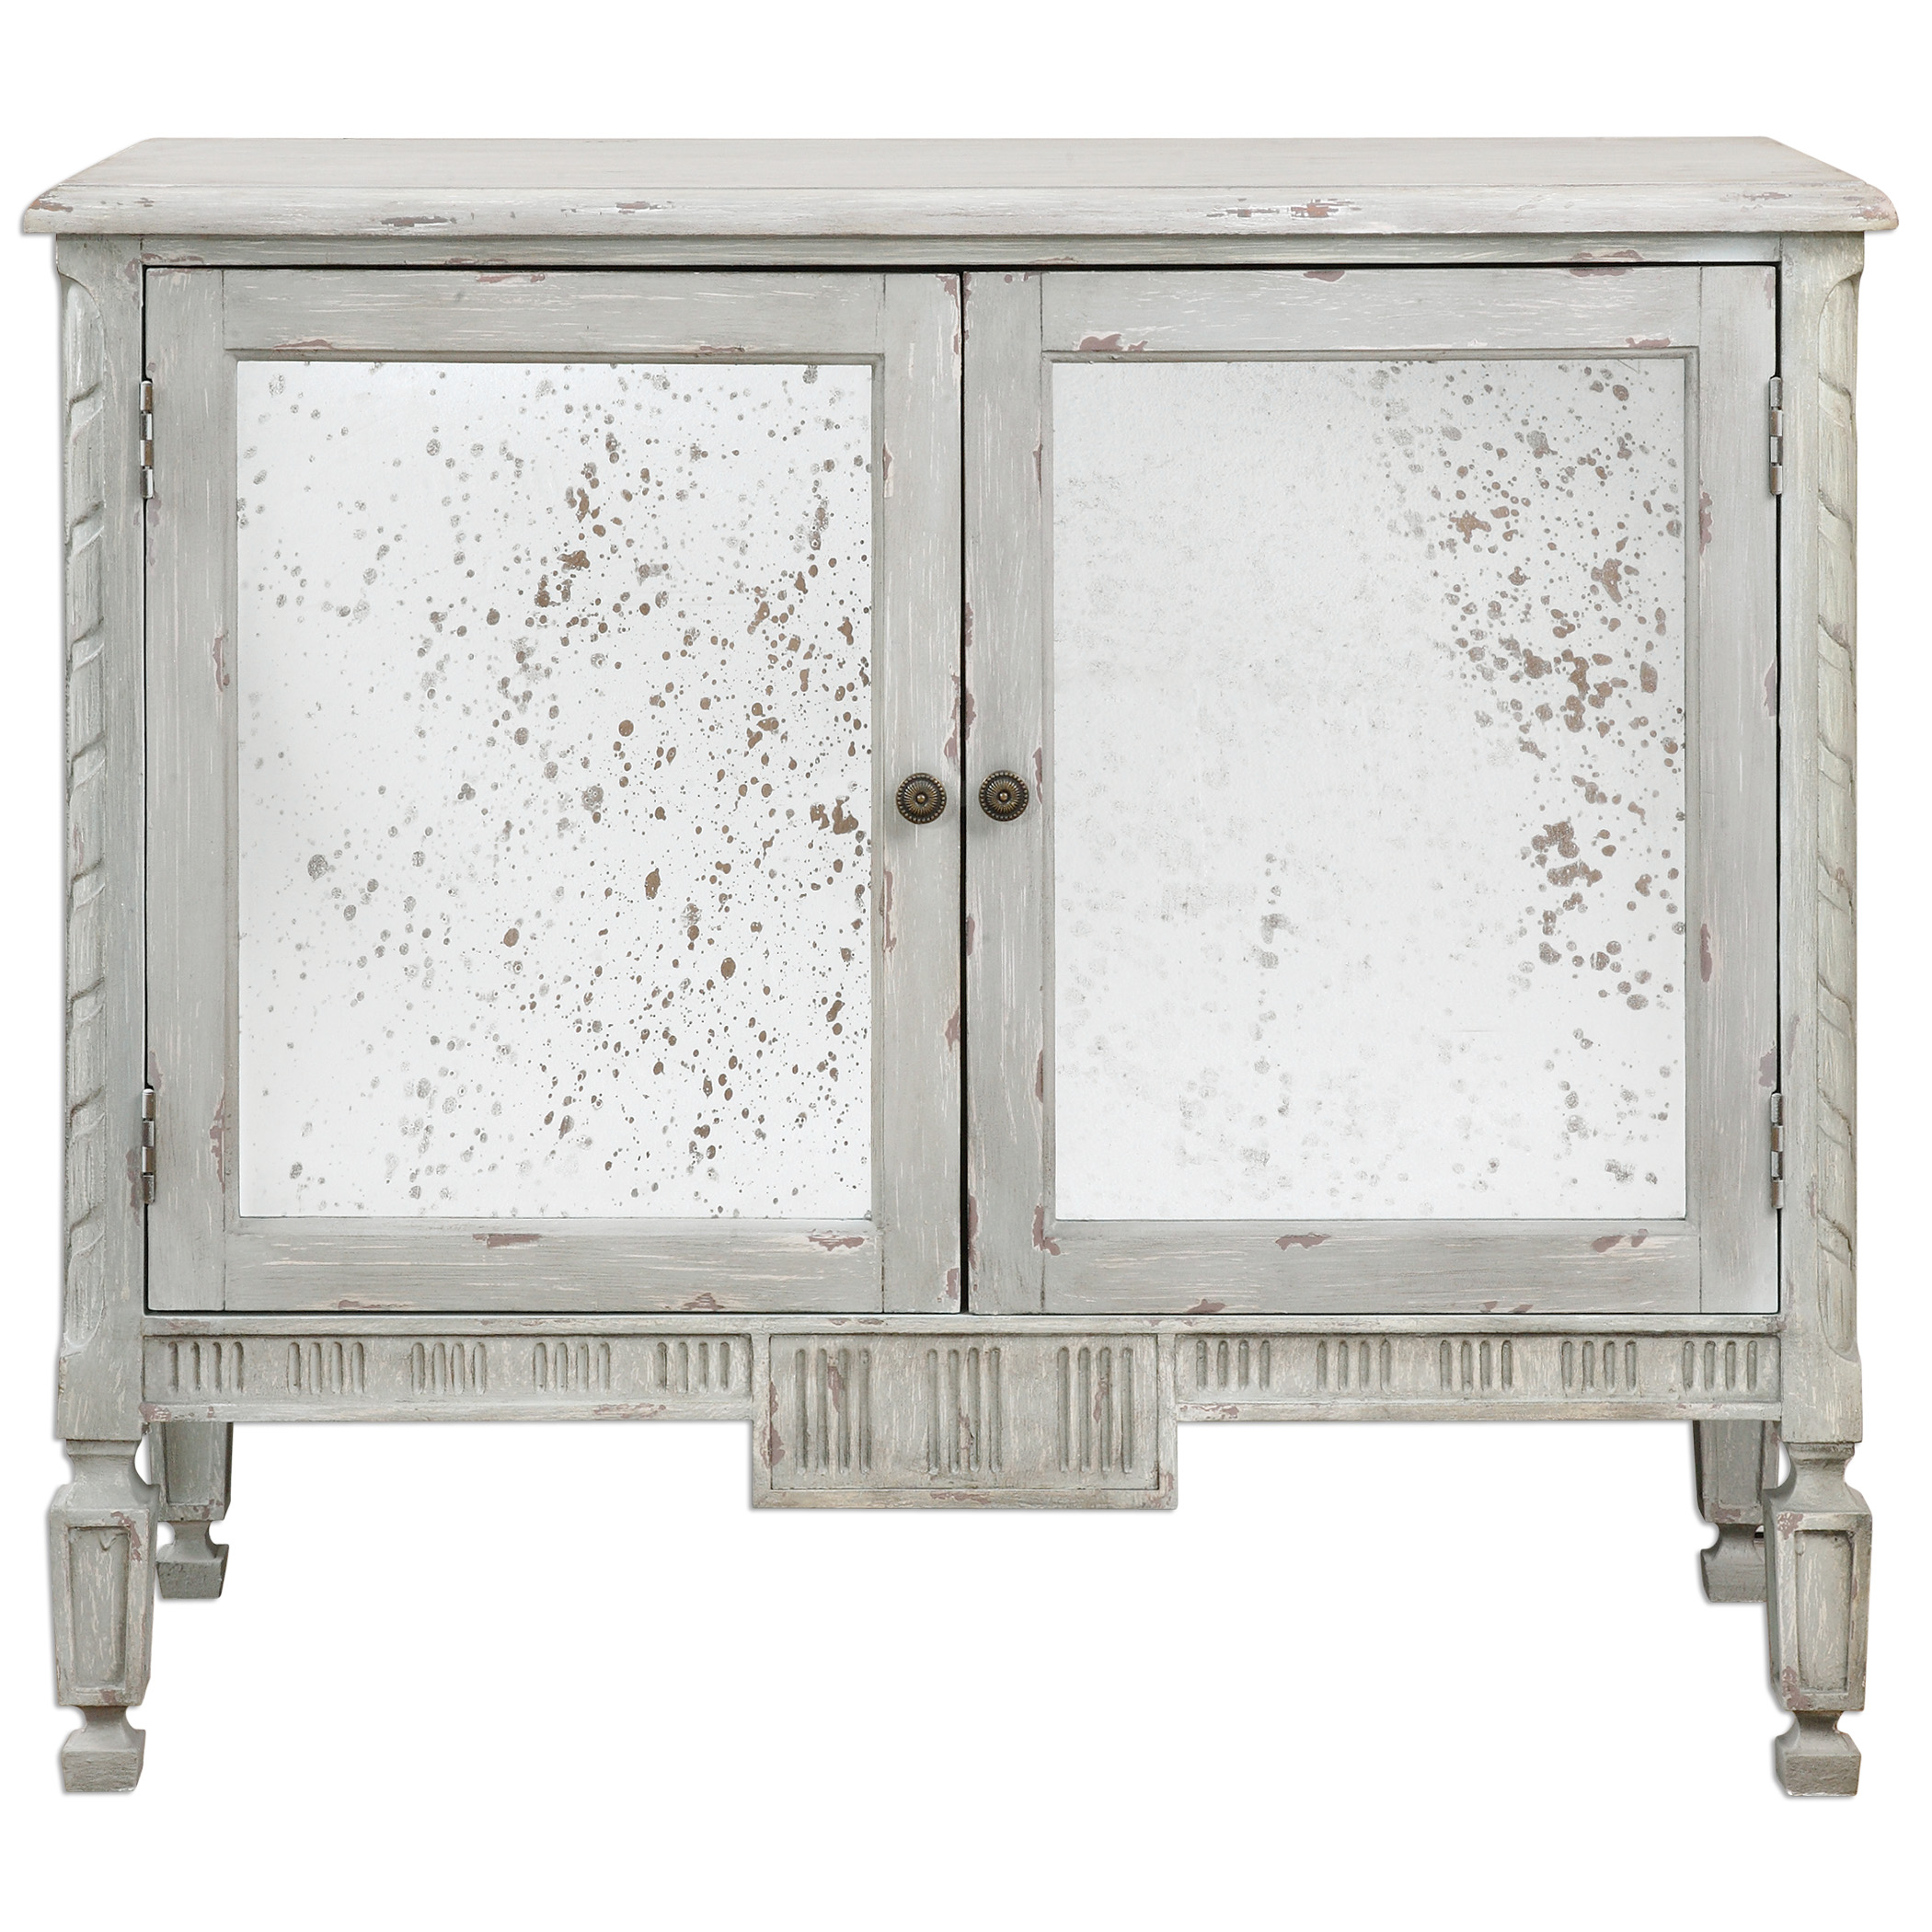 Uttermost Accent Furniture Okorie Gray Console Cabinet - Item Number: 24582